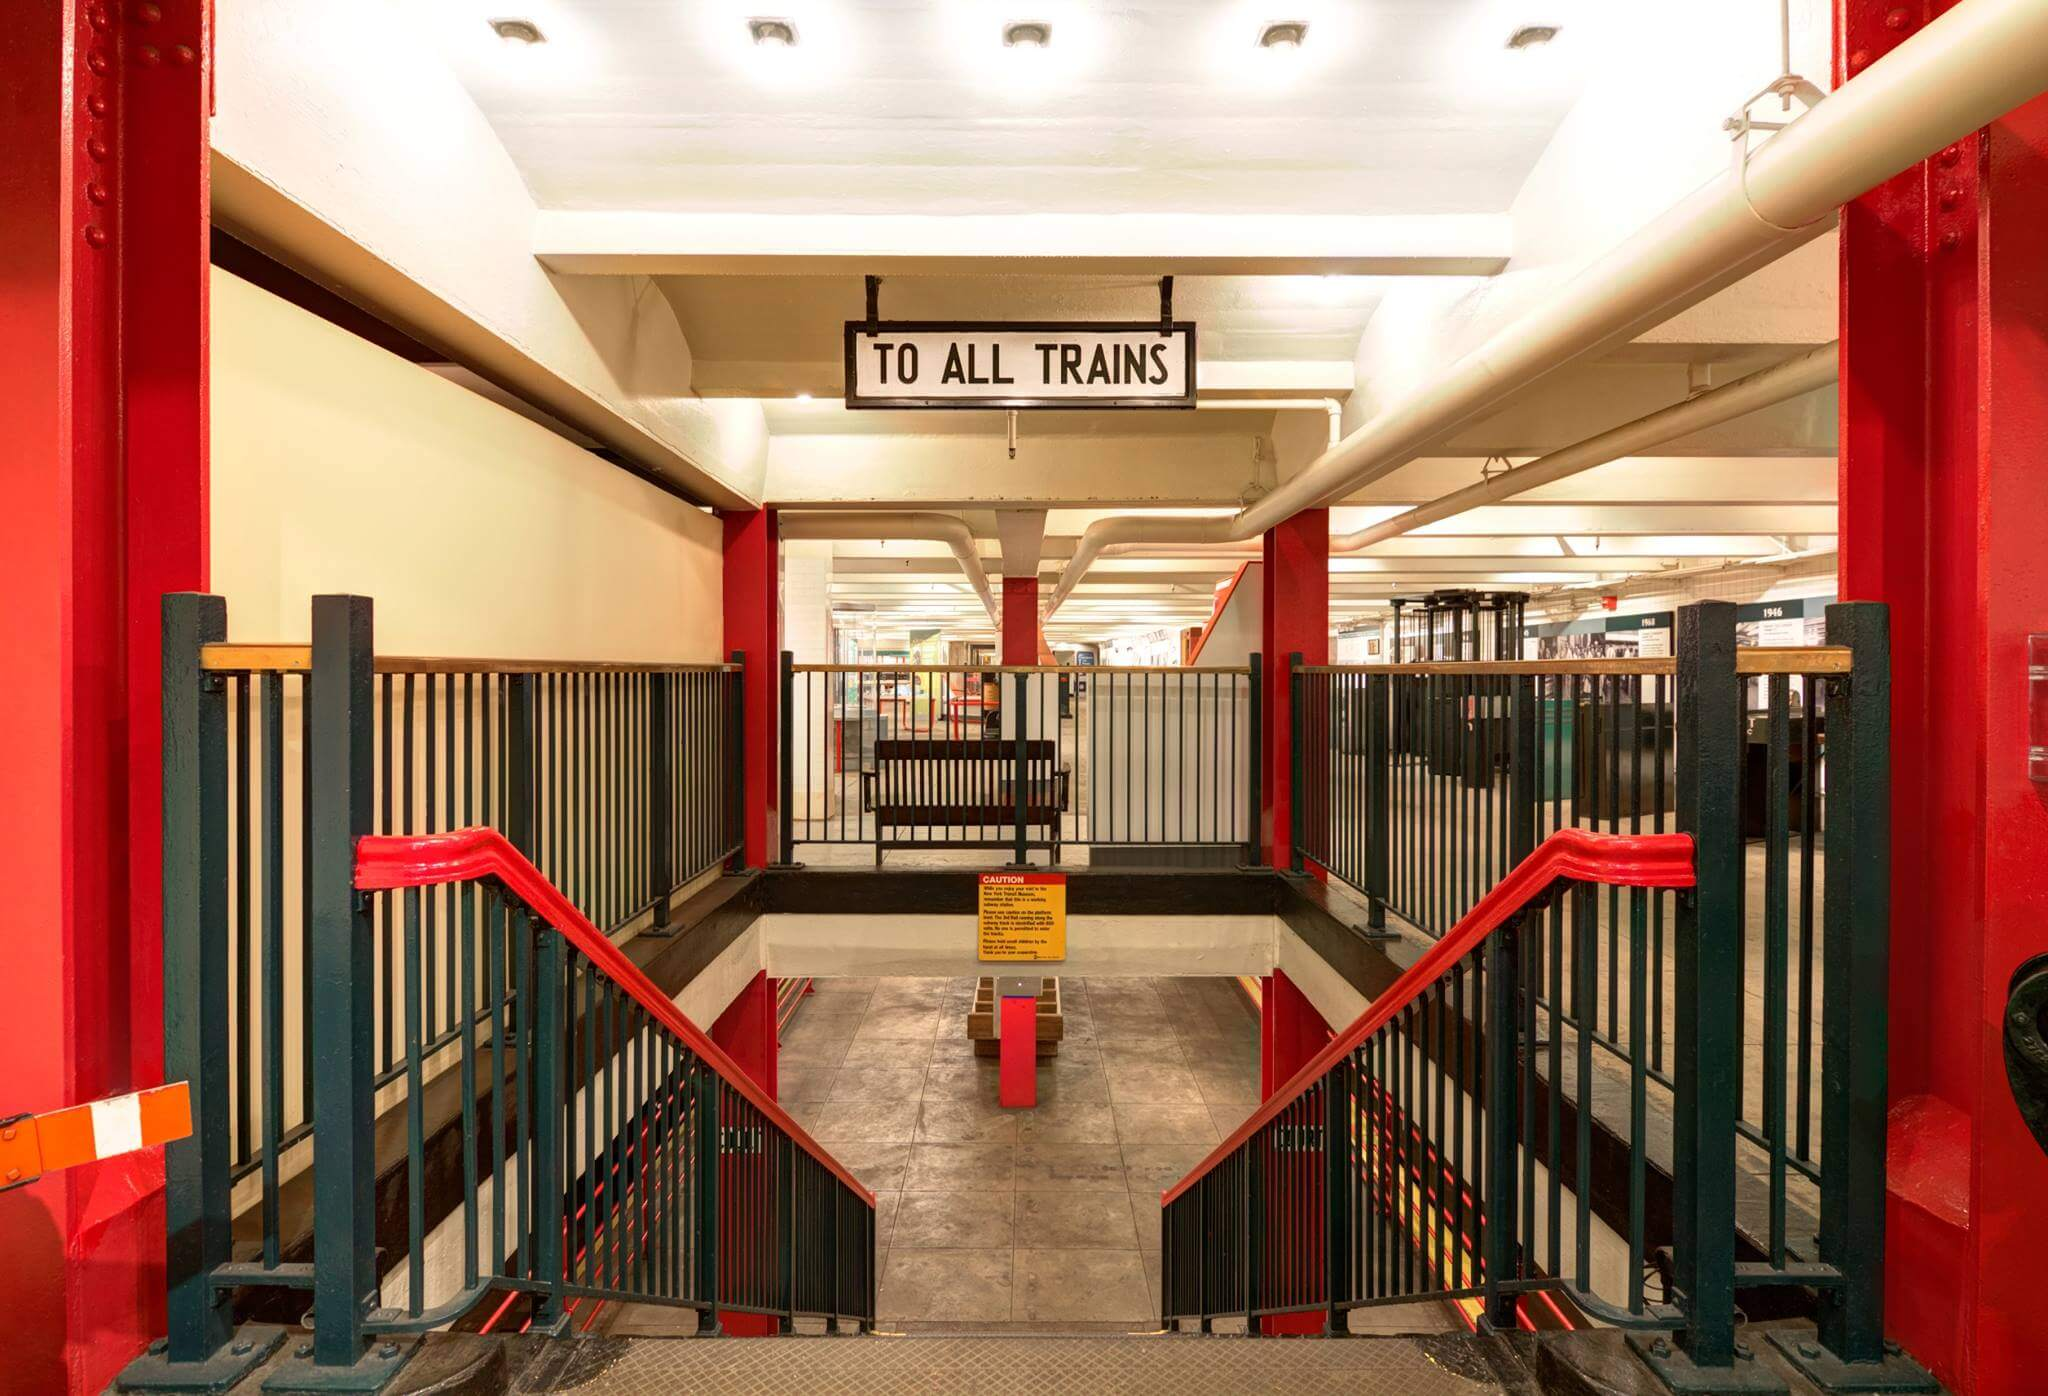 The Transit Museum is one of the highlights of Boerum Hill.